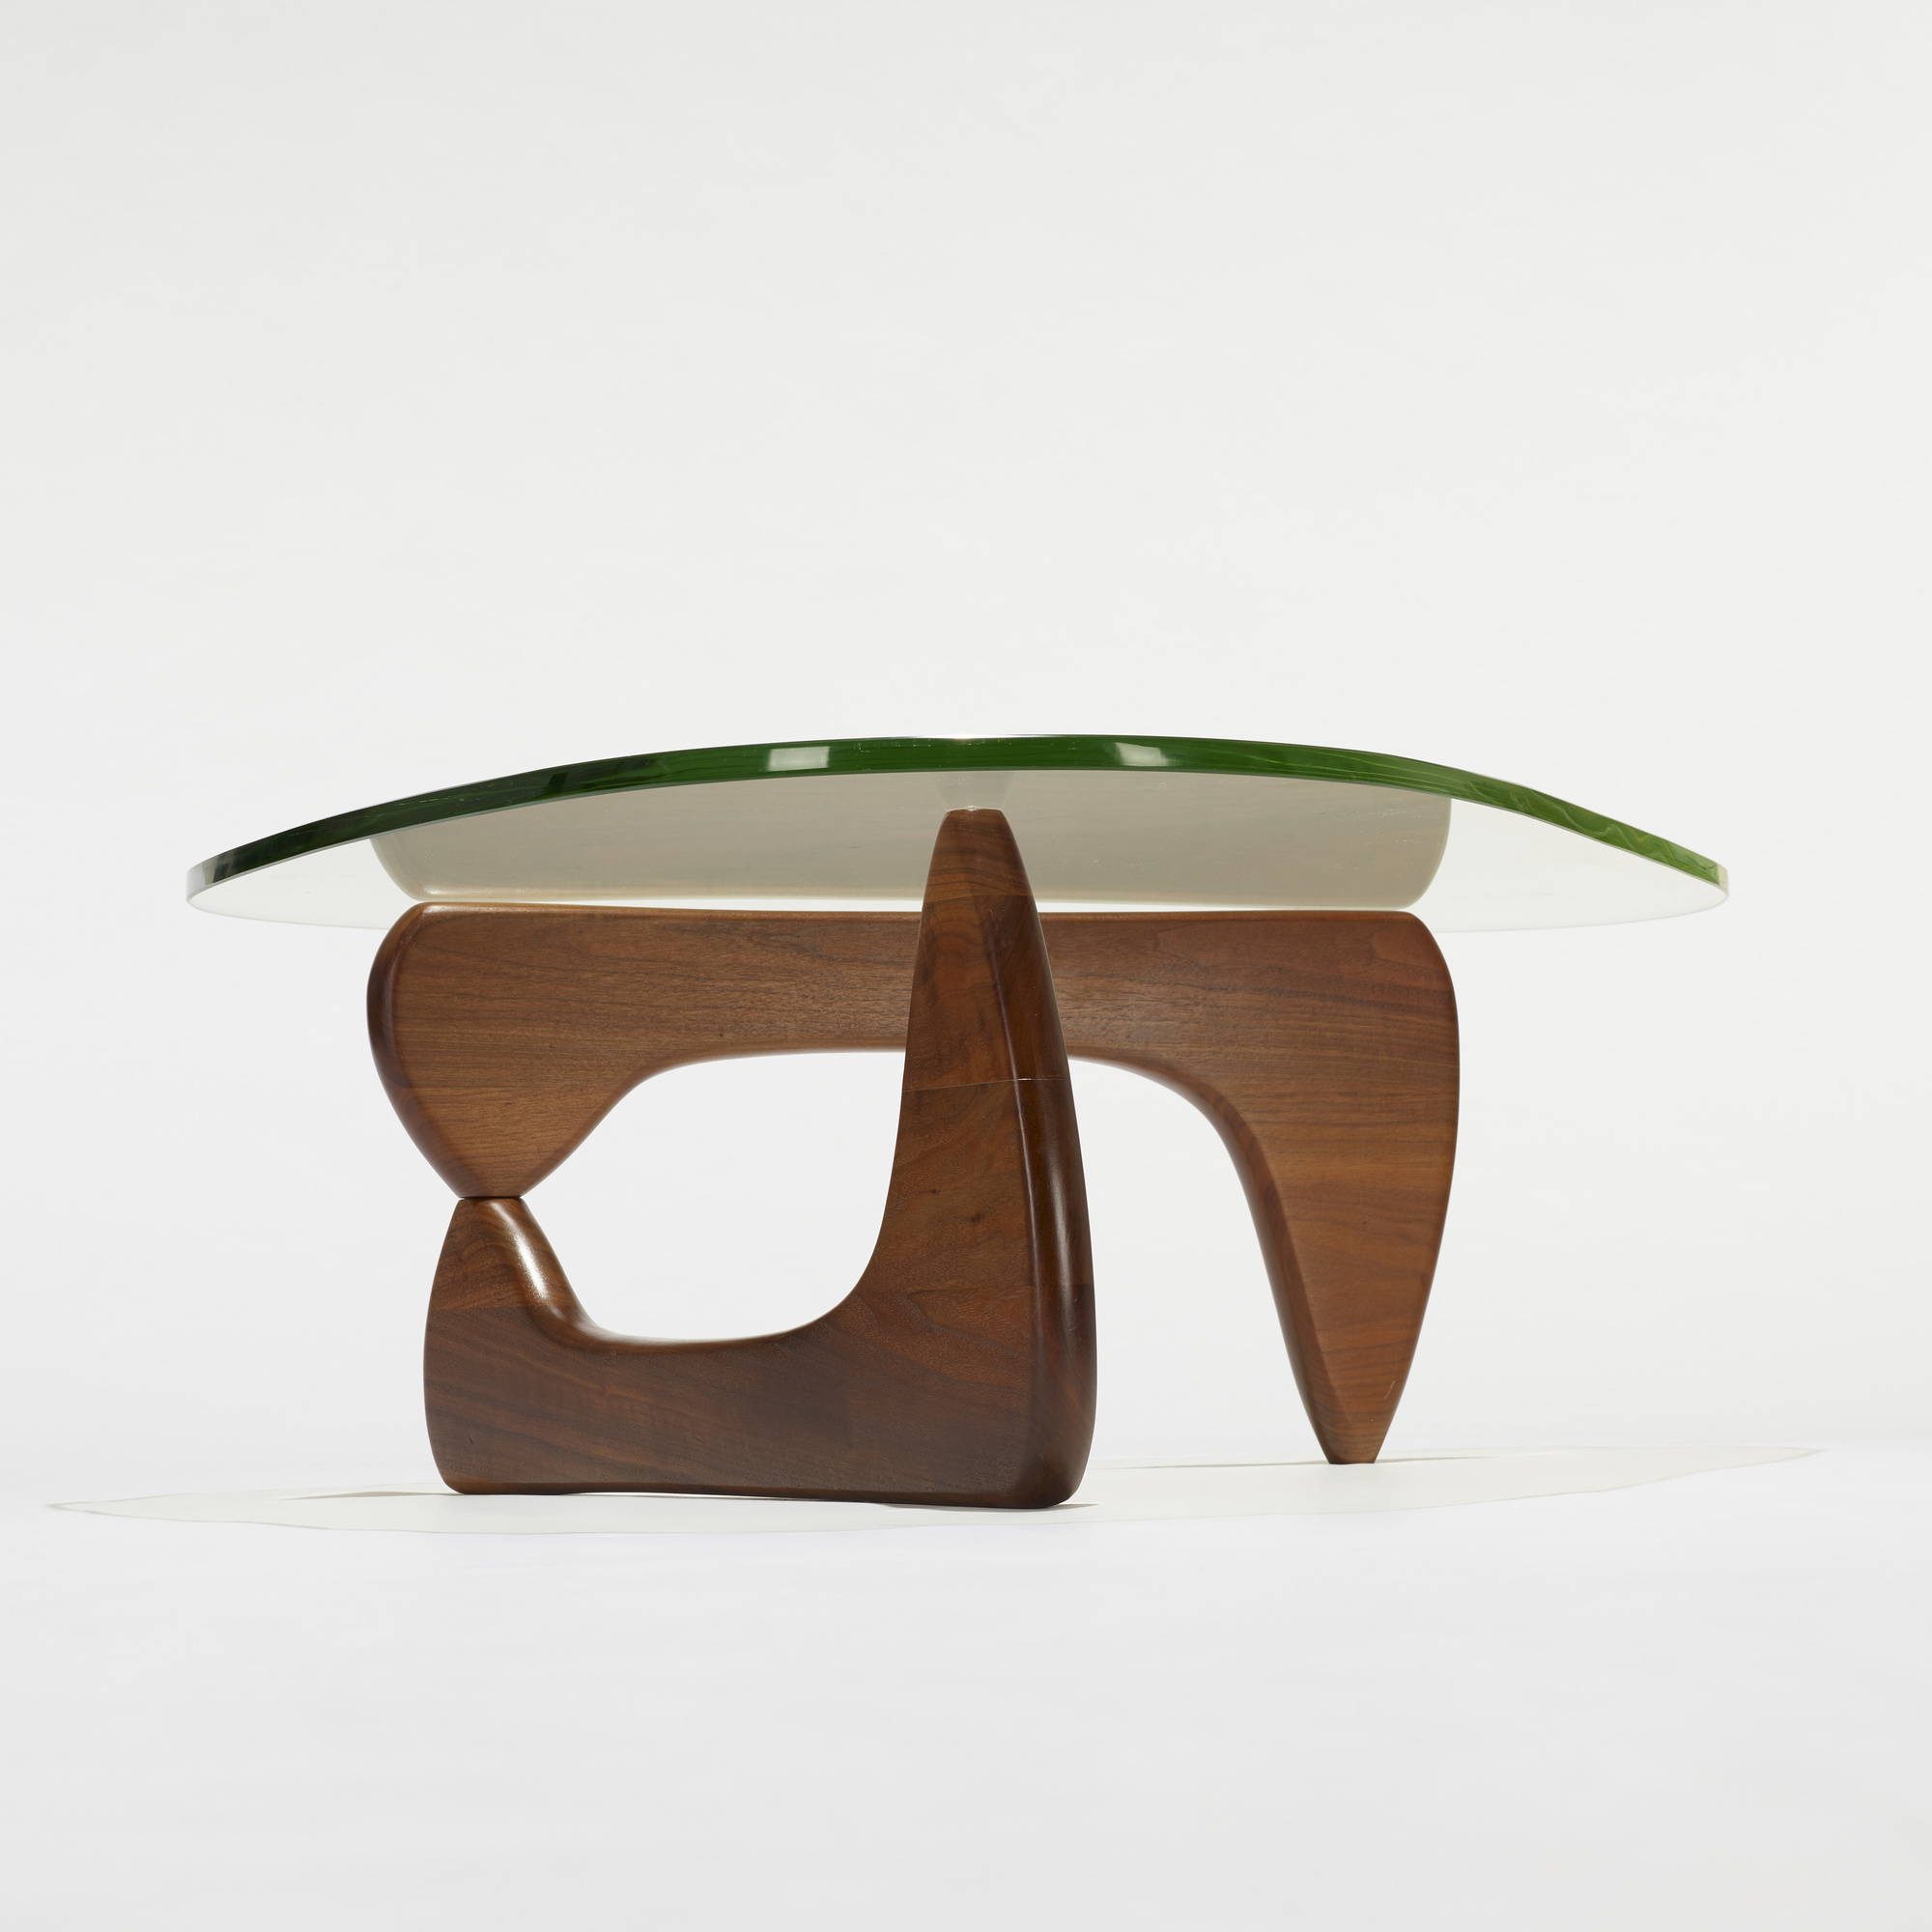 ... 125: Isamu Noguchi / Early Coffee Table, Model IN 50 (2 Of